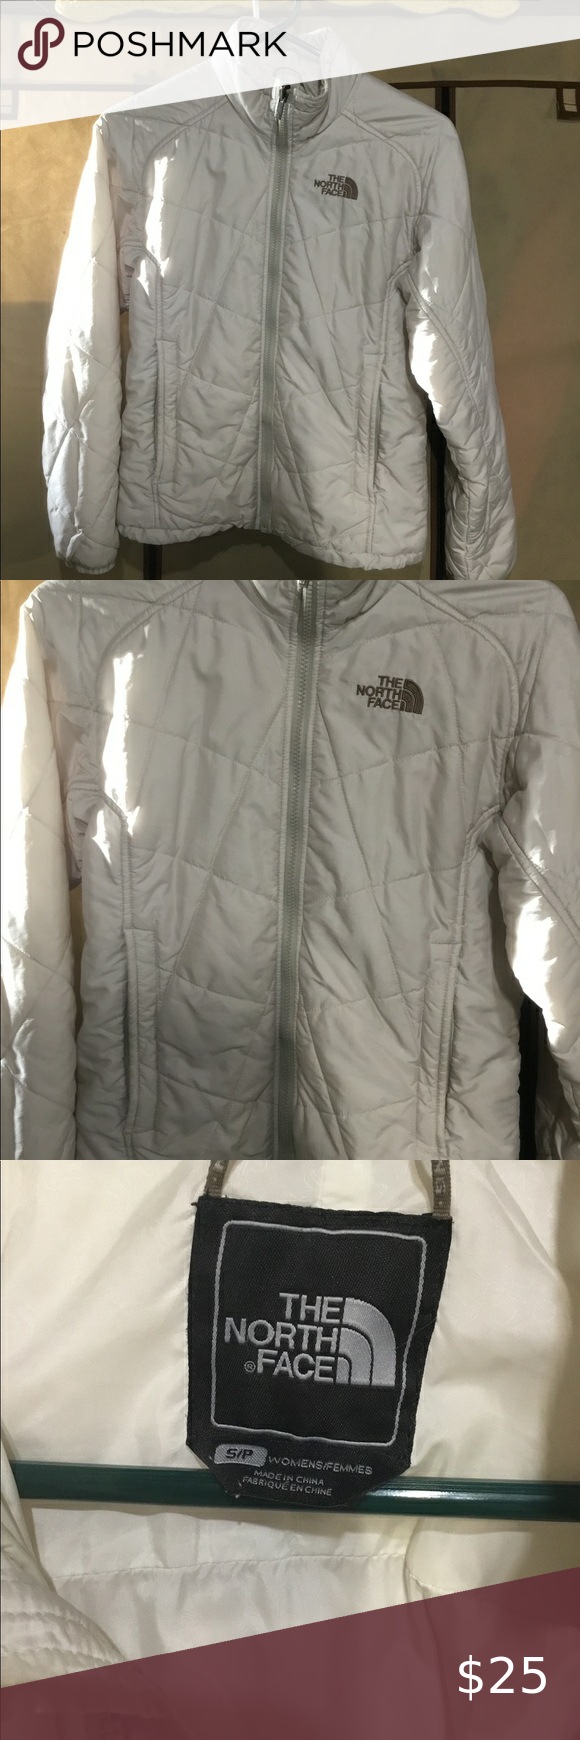 North Face Quilted Jacket Quilted Jacket Clothes Design The North Face [ 1740 x 580 Pixel ]